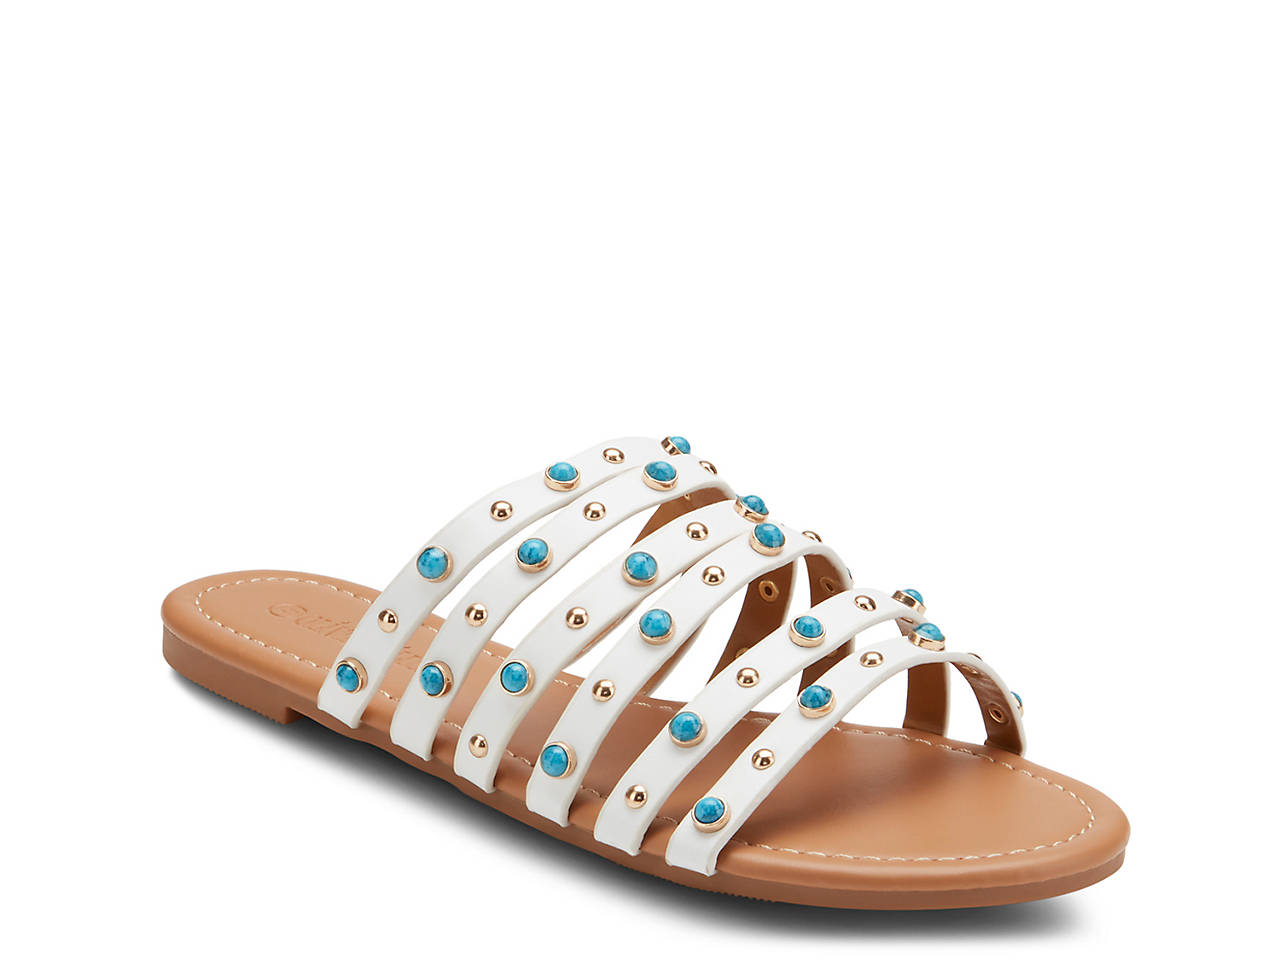 44362b1032366 Olivia Miller Dreamer Sandal Women s Shoes